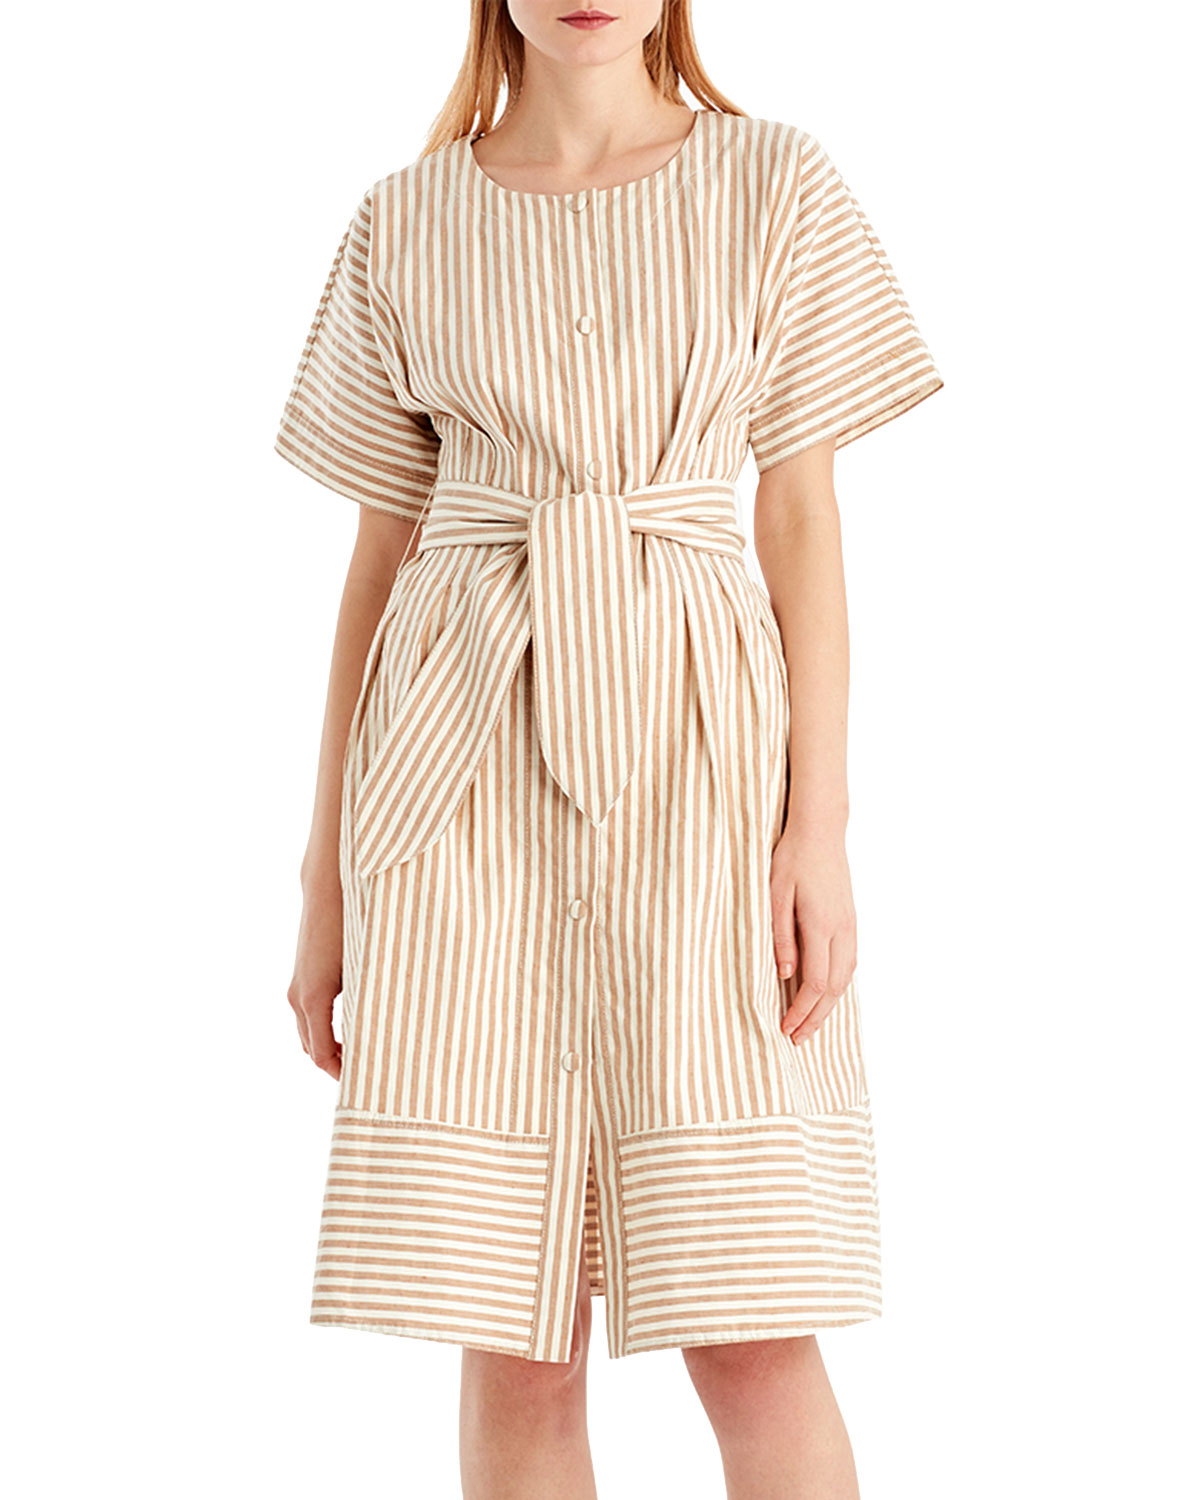 b69fc6174 Jason Wu GREY Vintage Striped Linen-Blend Dress | Neiman Marcus